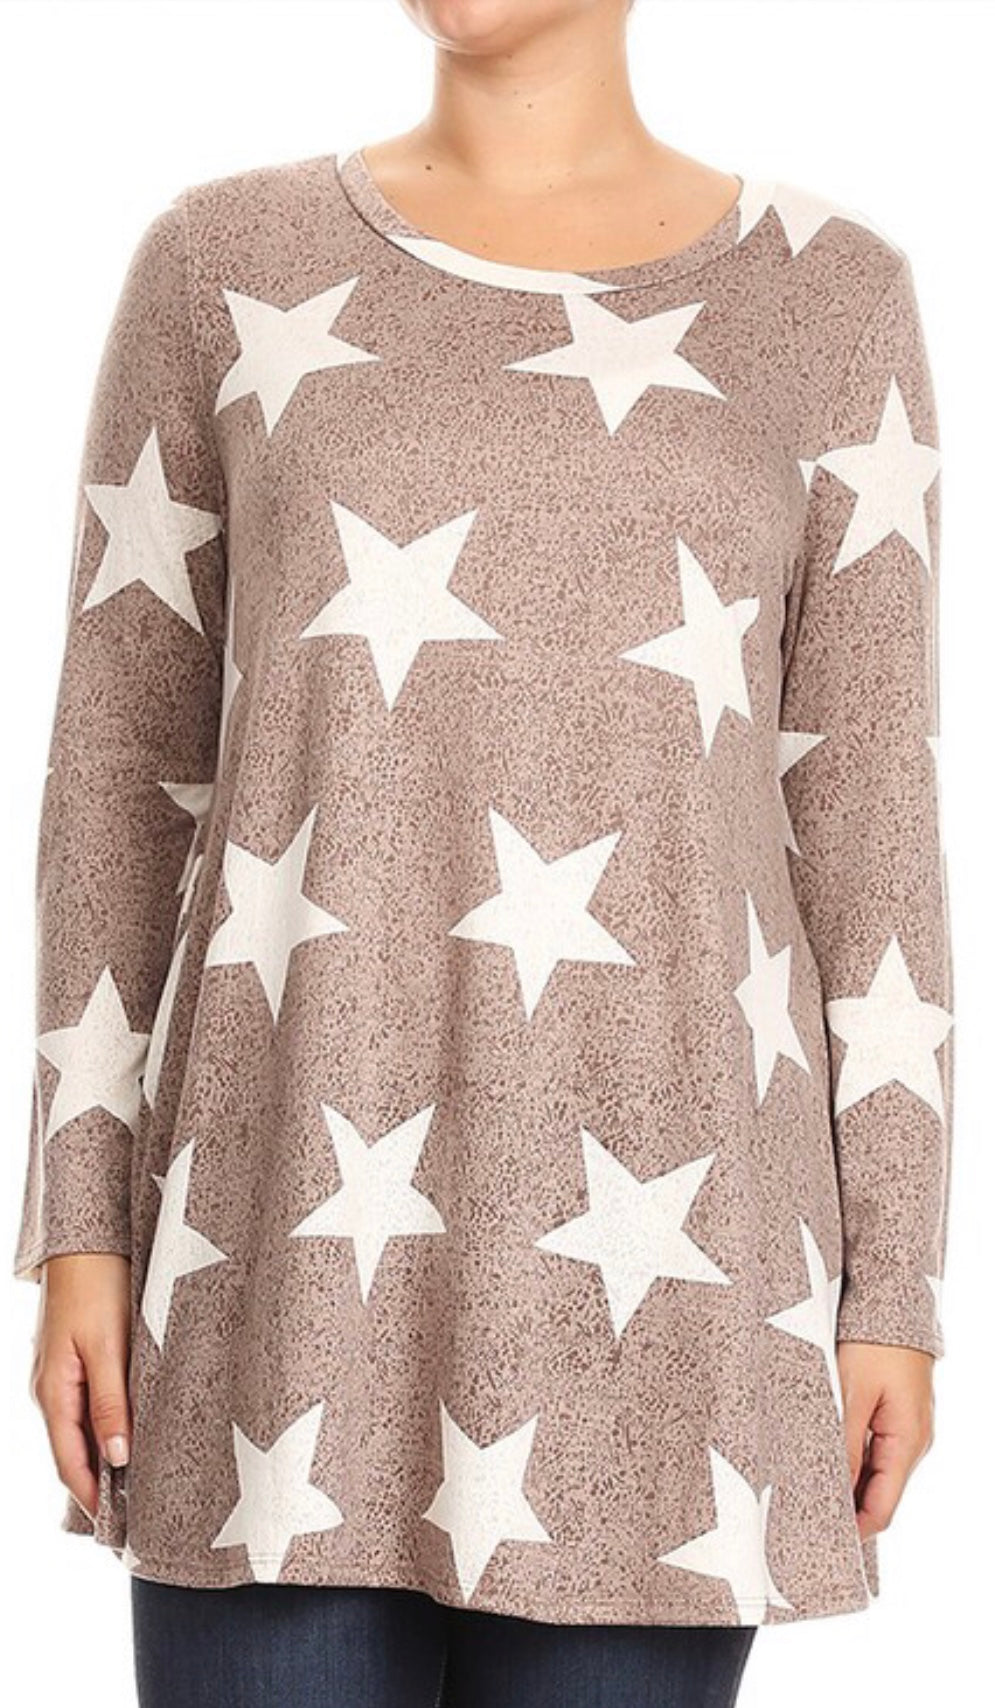 Star Accent Shirt Free Shipping